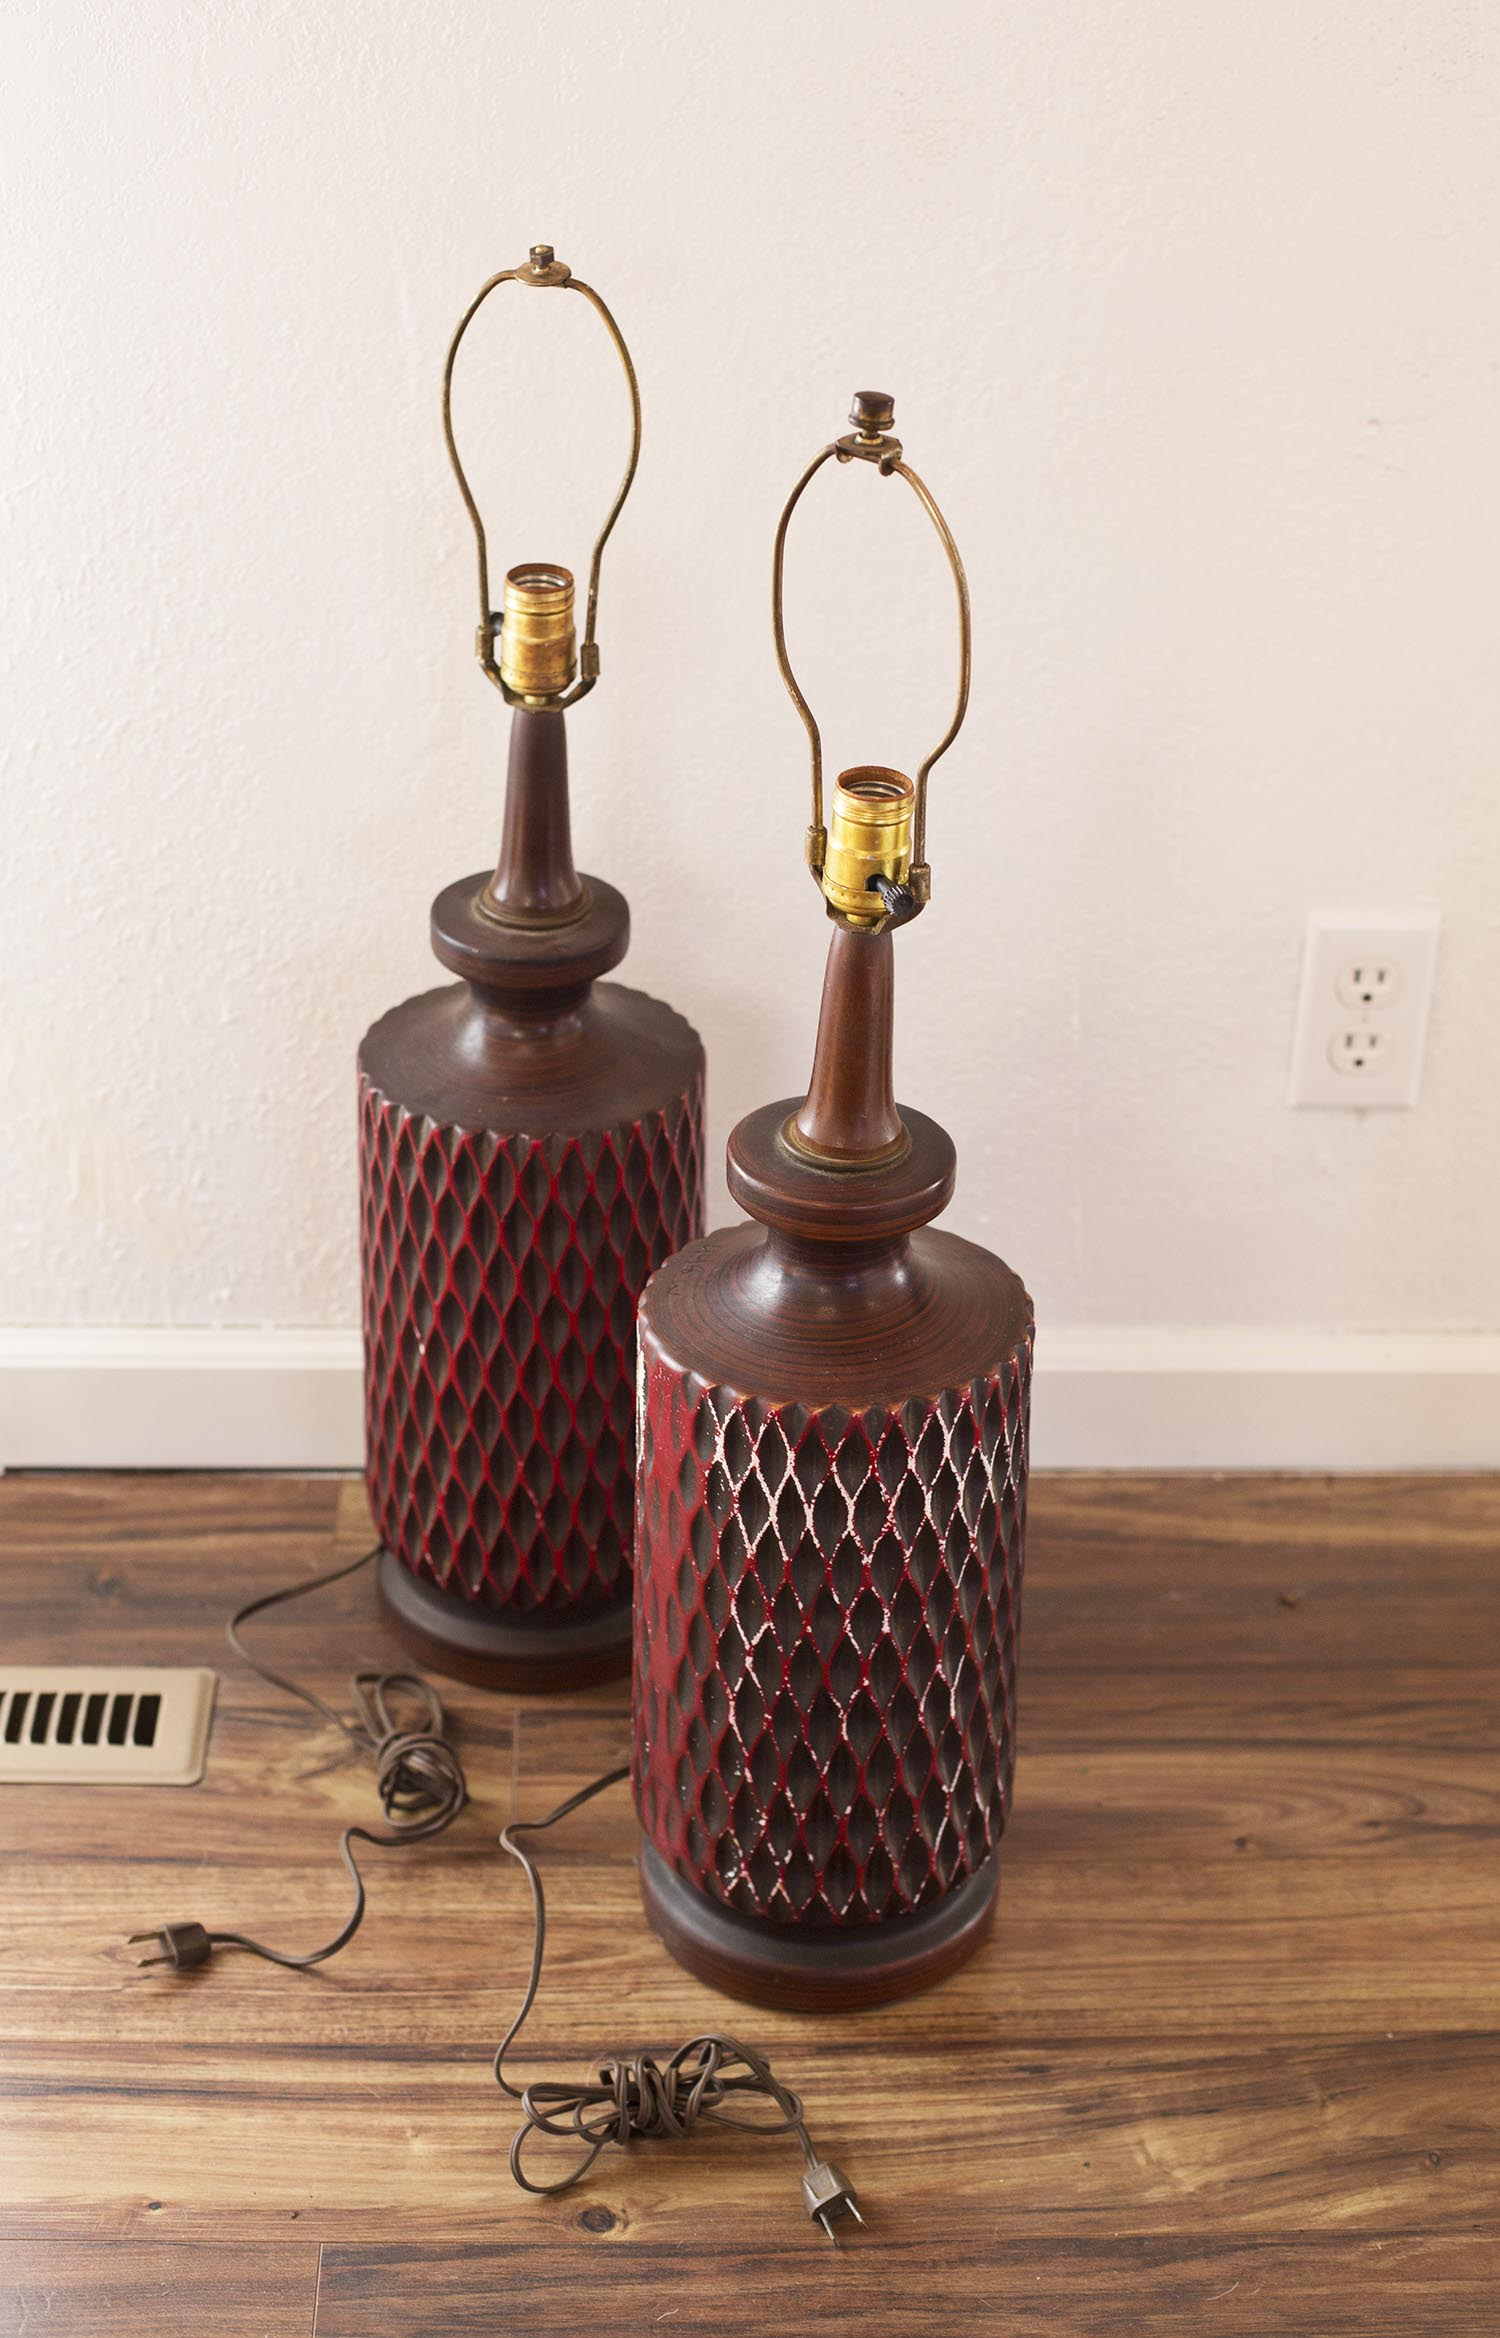 Used lamp pair